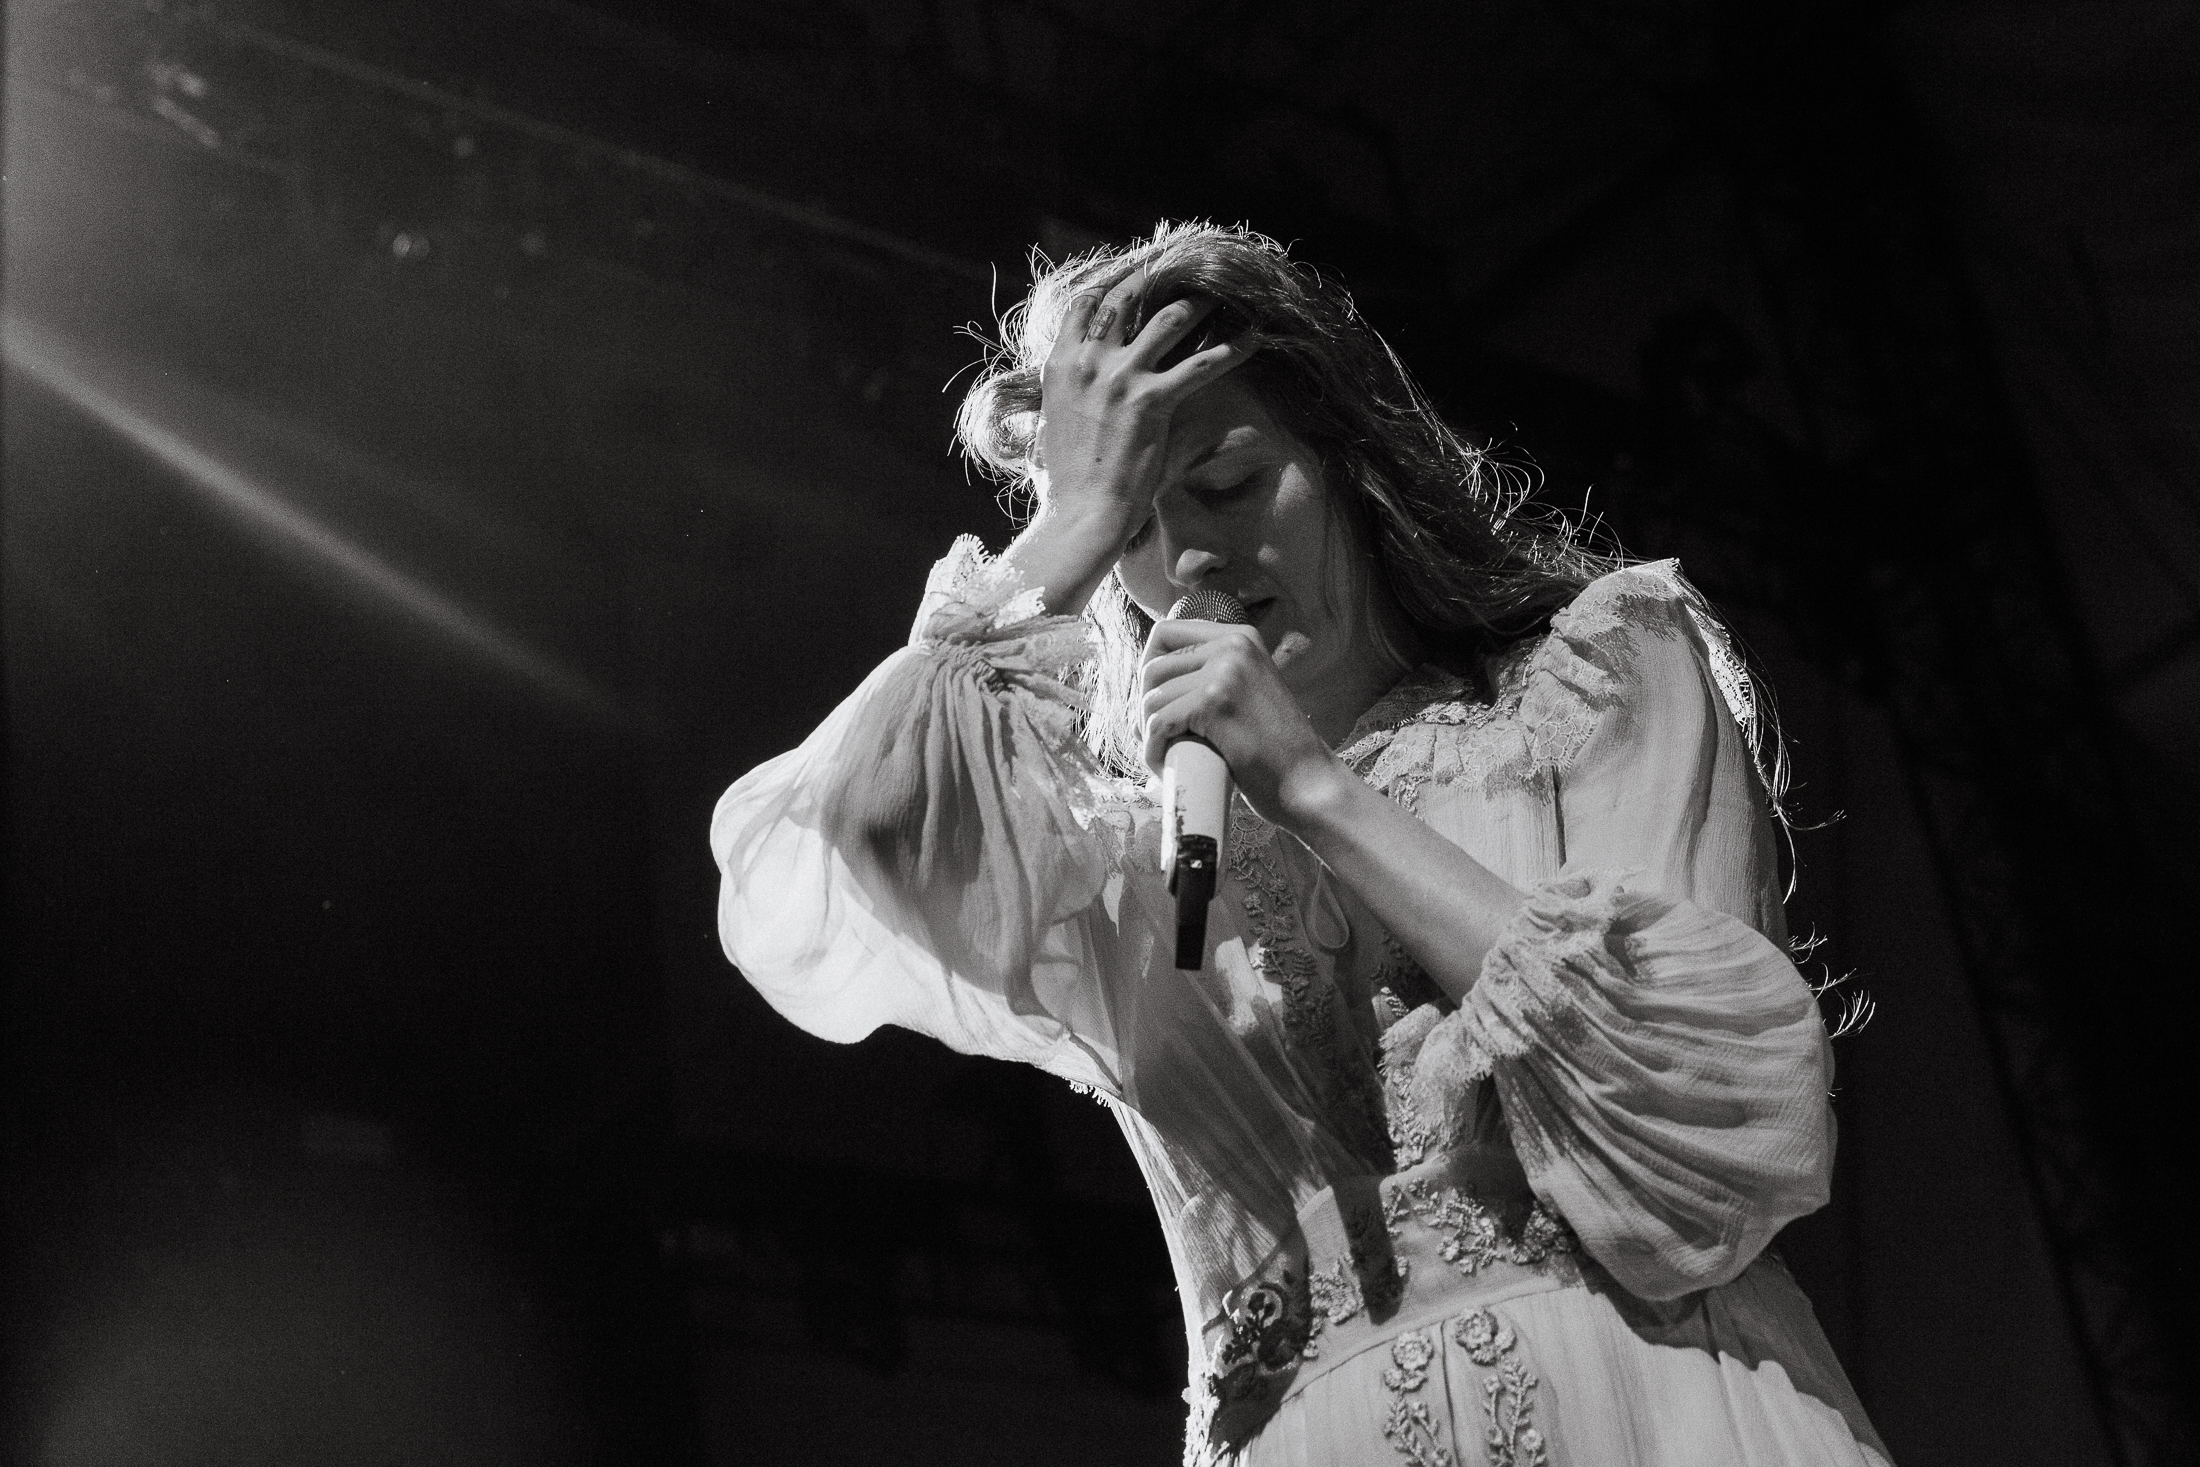 Florence and the Machine at the Huntington Bank Pavilion at Northerly Island. (Photo by Alex Schelldorf)